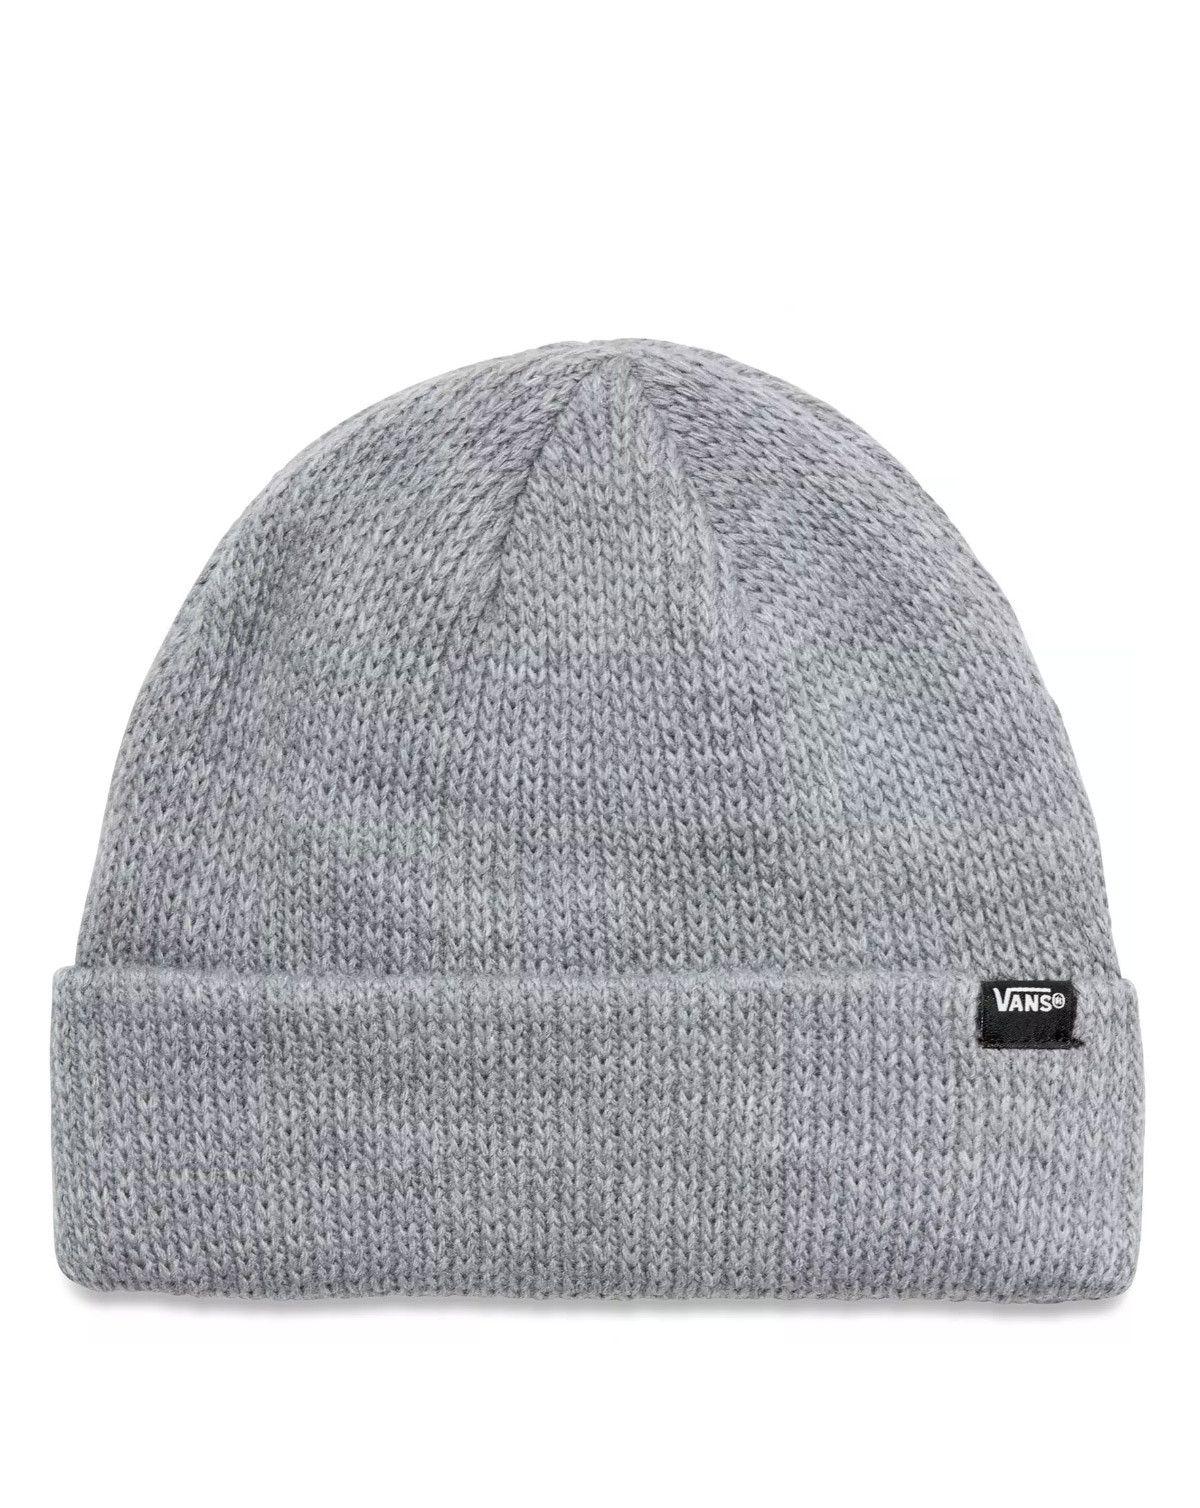 Image of   VANS Core Basics Beanie (Grå, One Size)